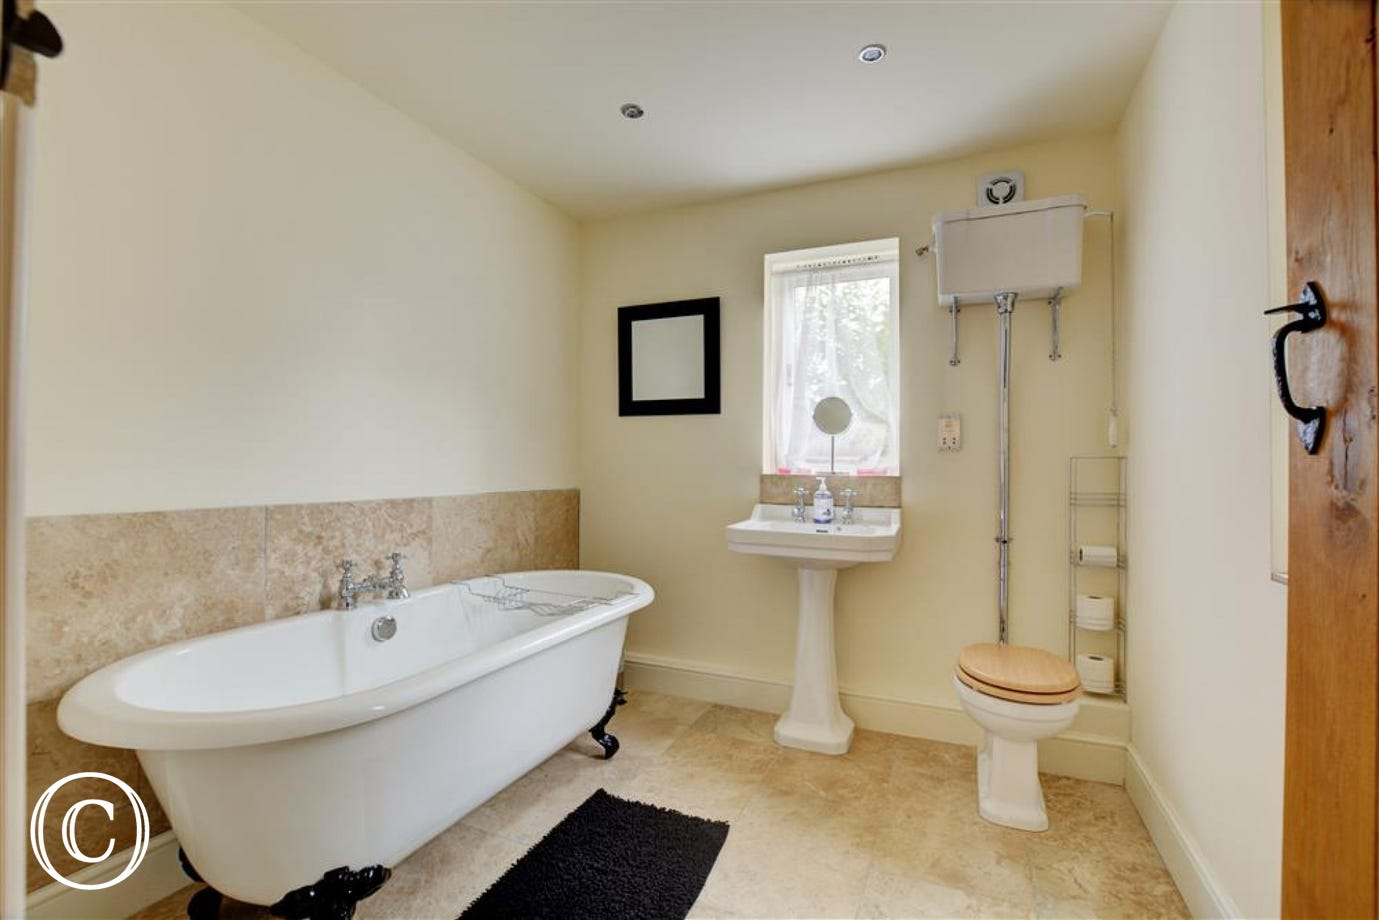 House bathroom with roll top bath and underfloor heating.